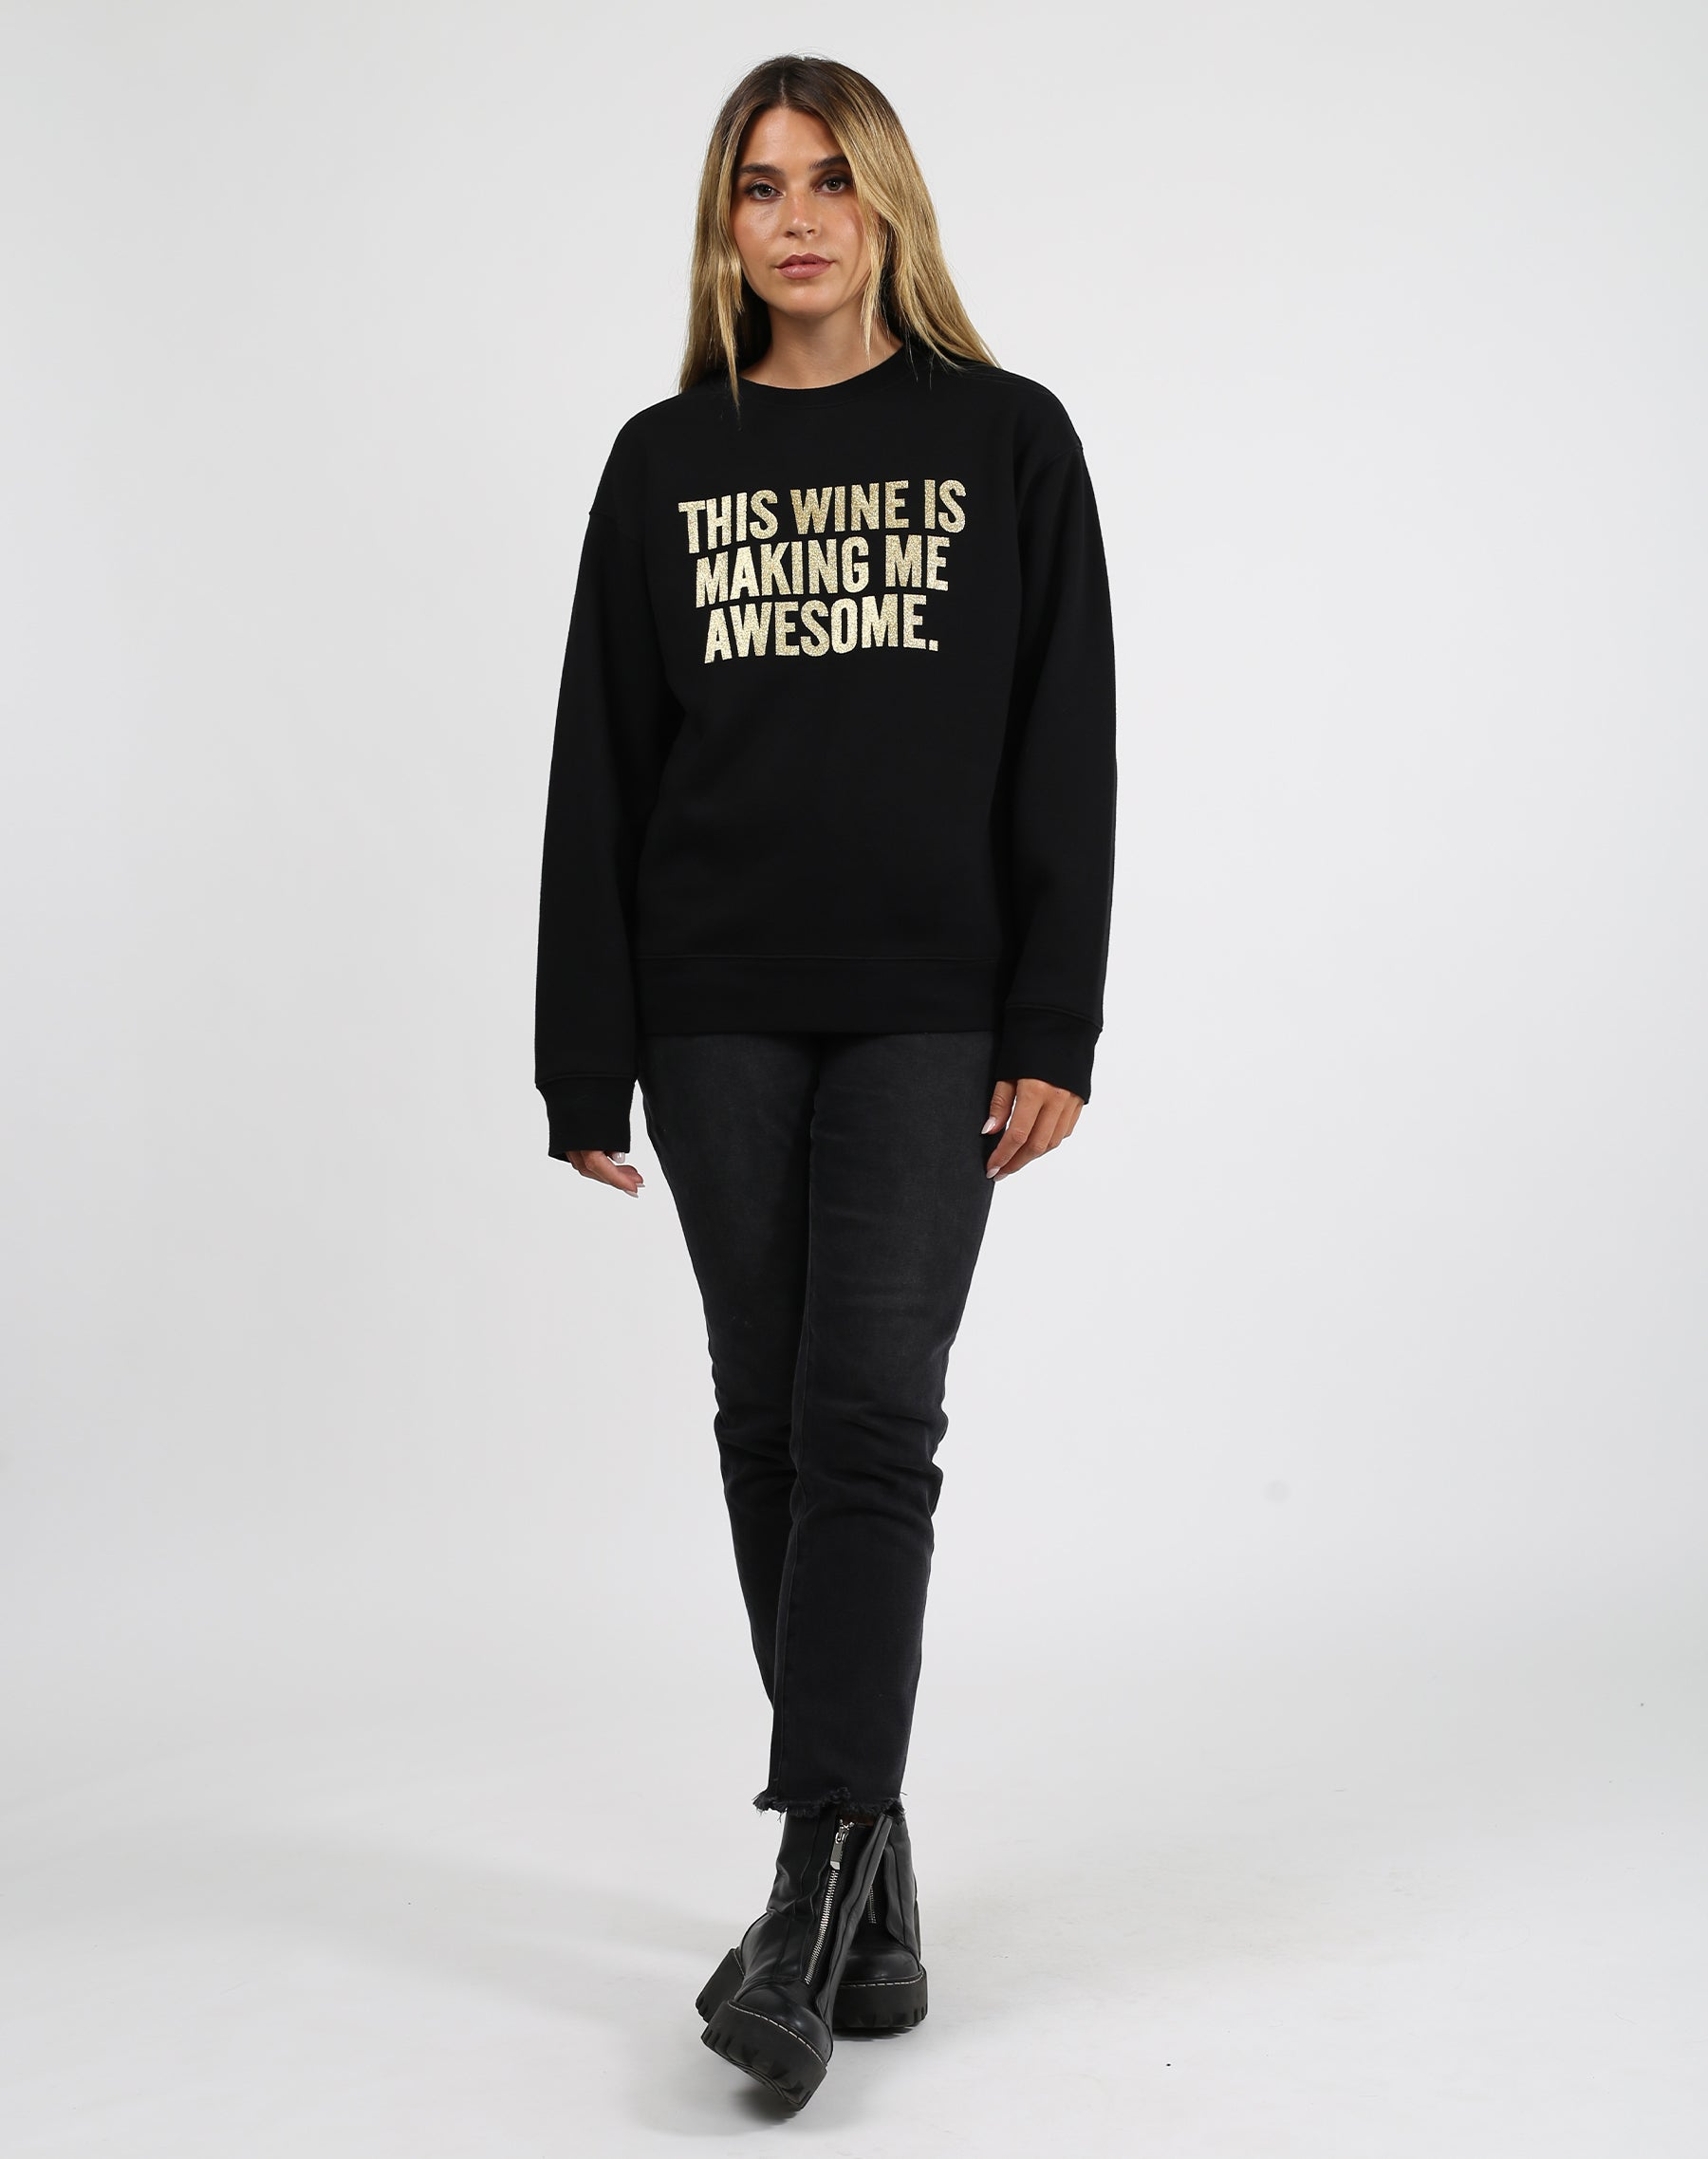 This is a photo of a model wearing the This Wine Gold Glitter Classic Crew Neck Sweatshirt in Black by Brunette the Label.